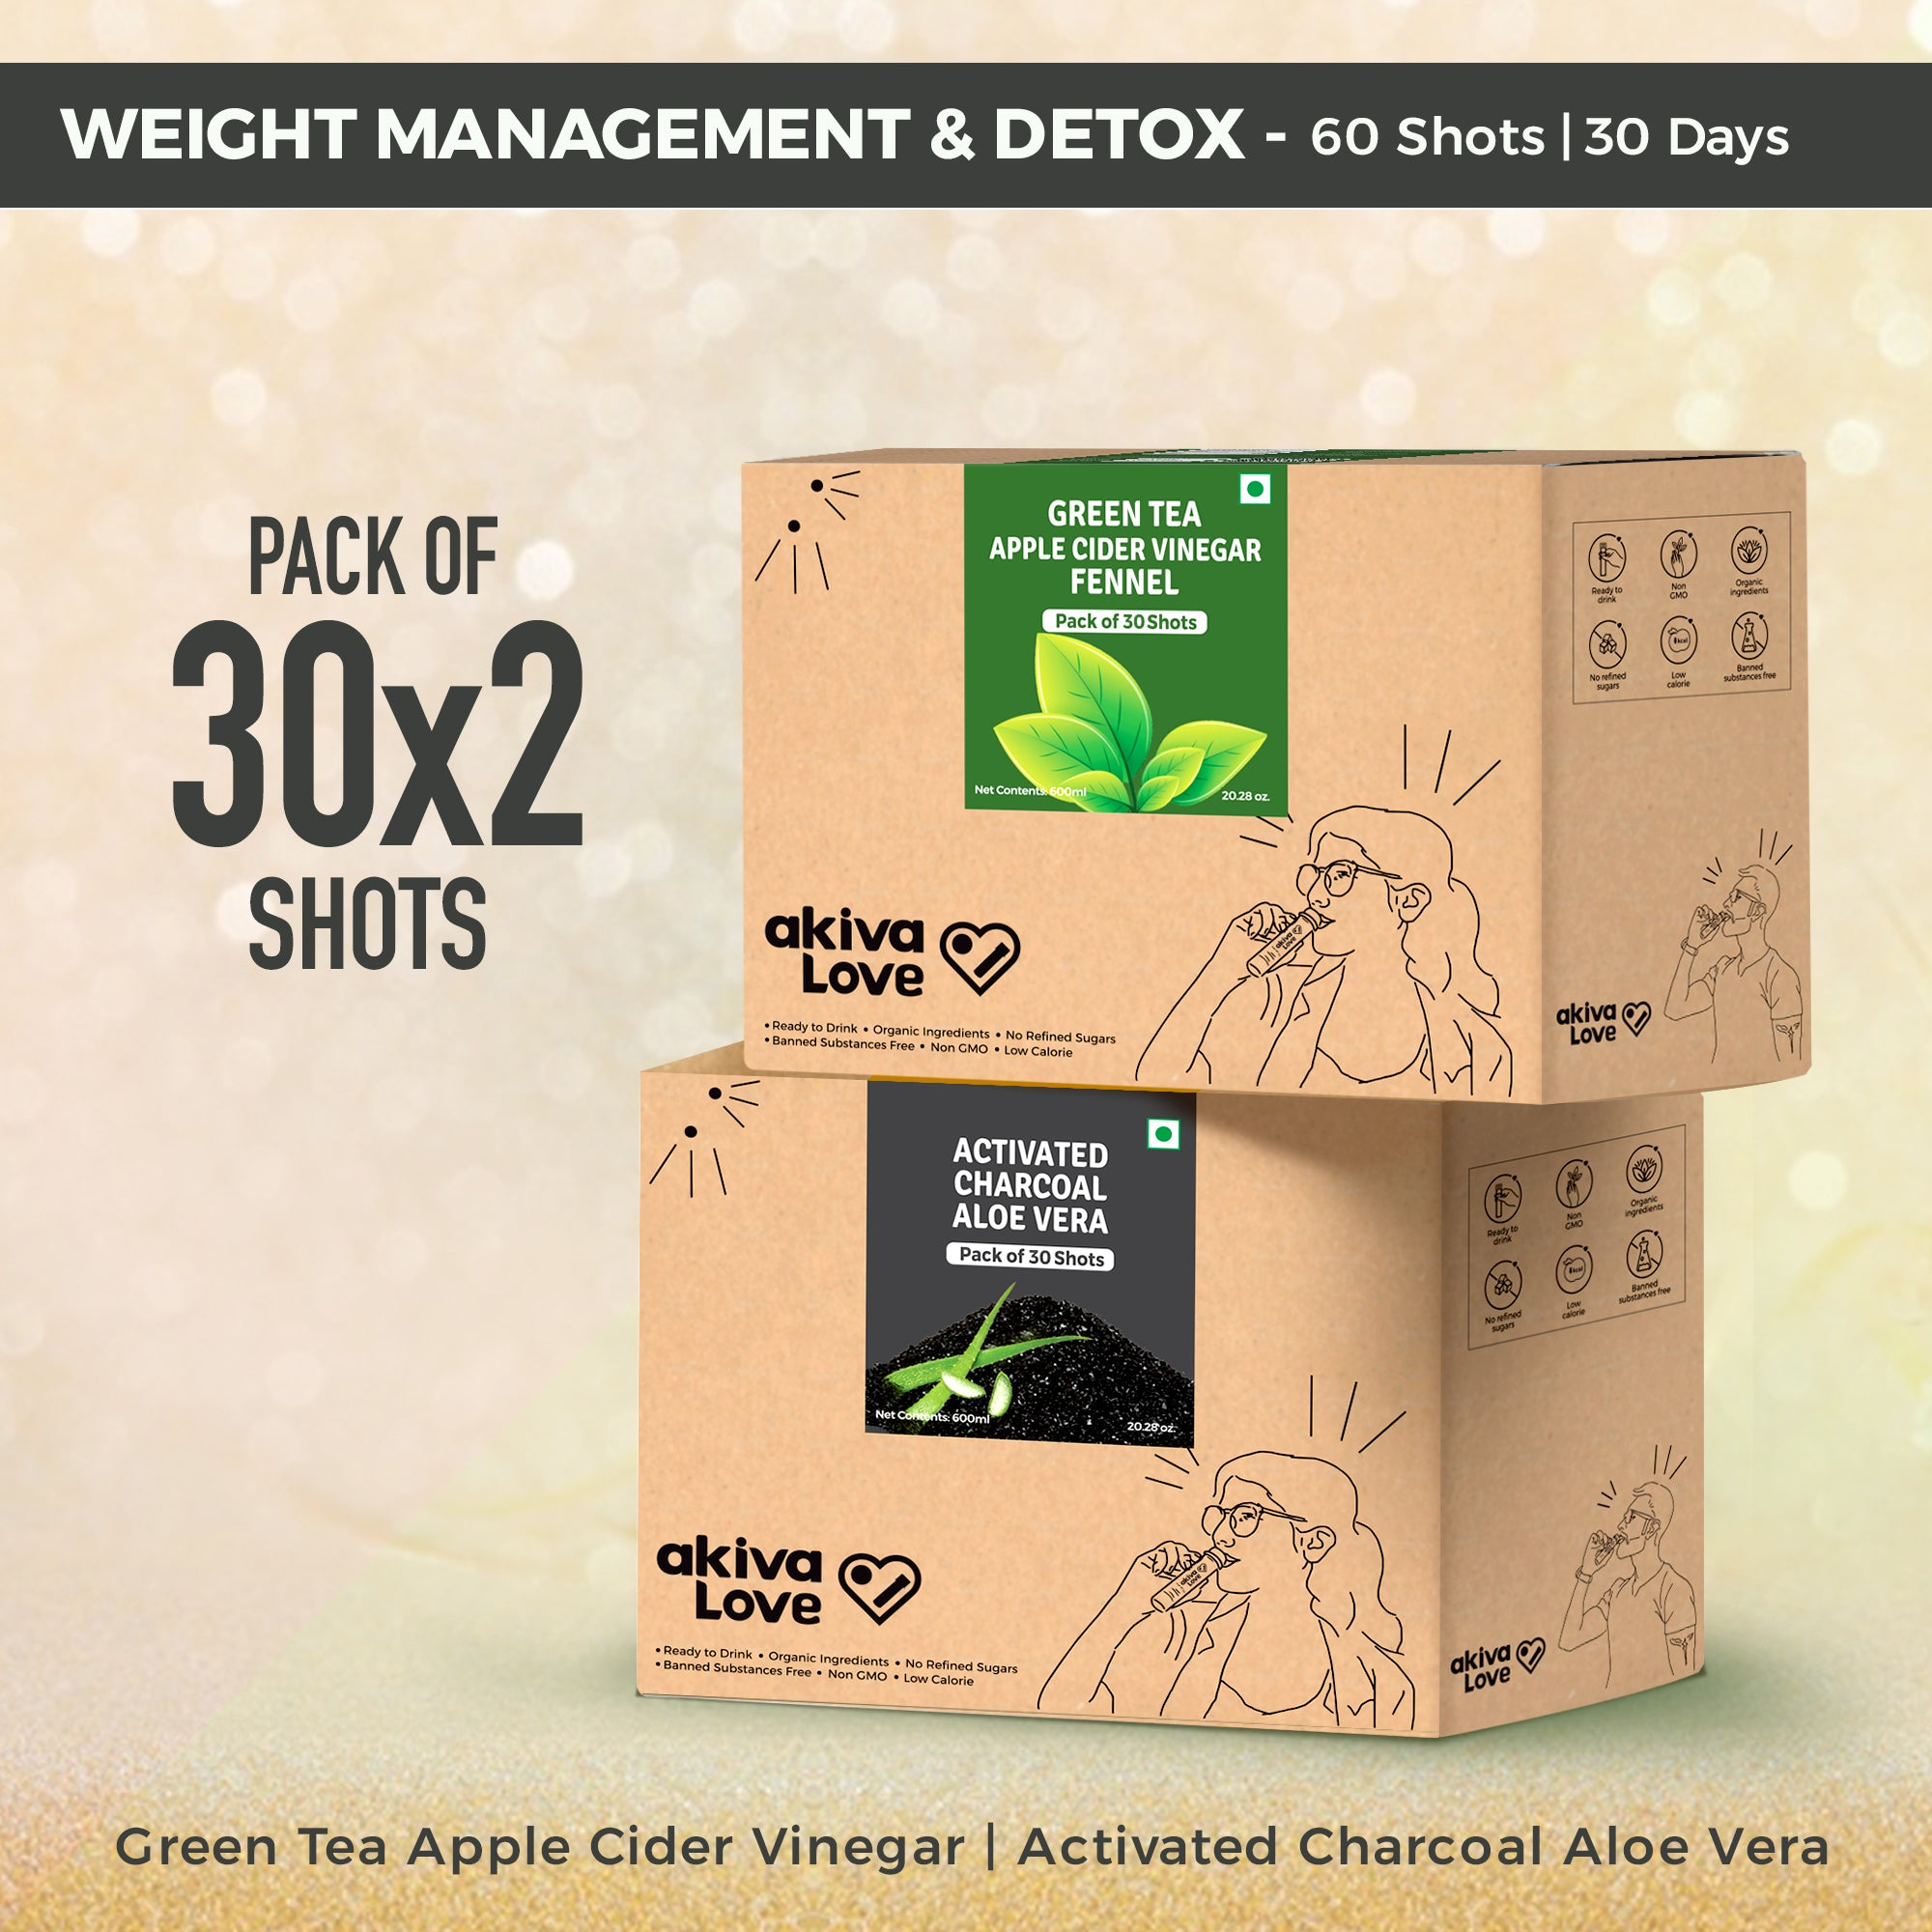 Weight Management & Detox Pack - 60 Shots | 30 days Green Tea Apple Cider Vinegar Fennel Shots + Activated Charcoal Aloe Vera Shots